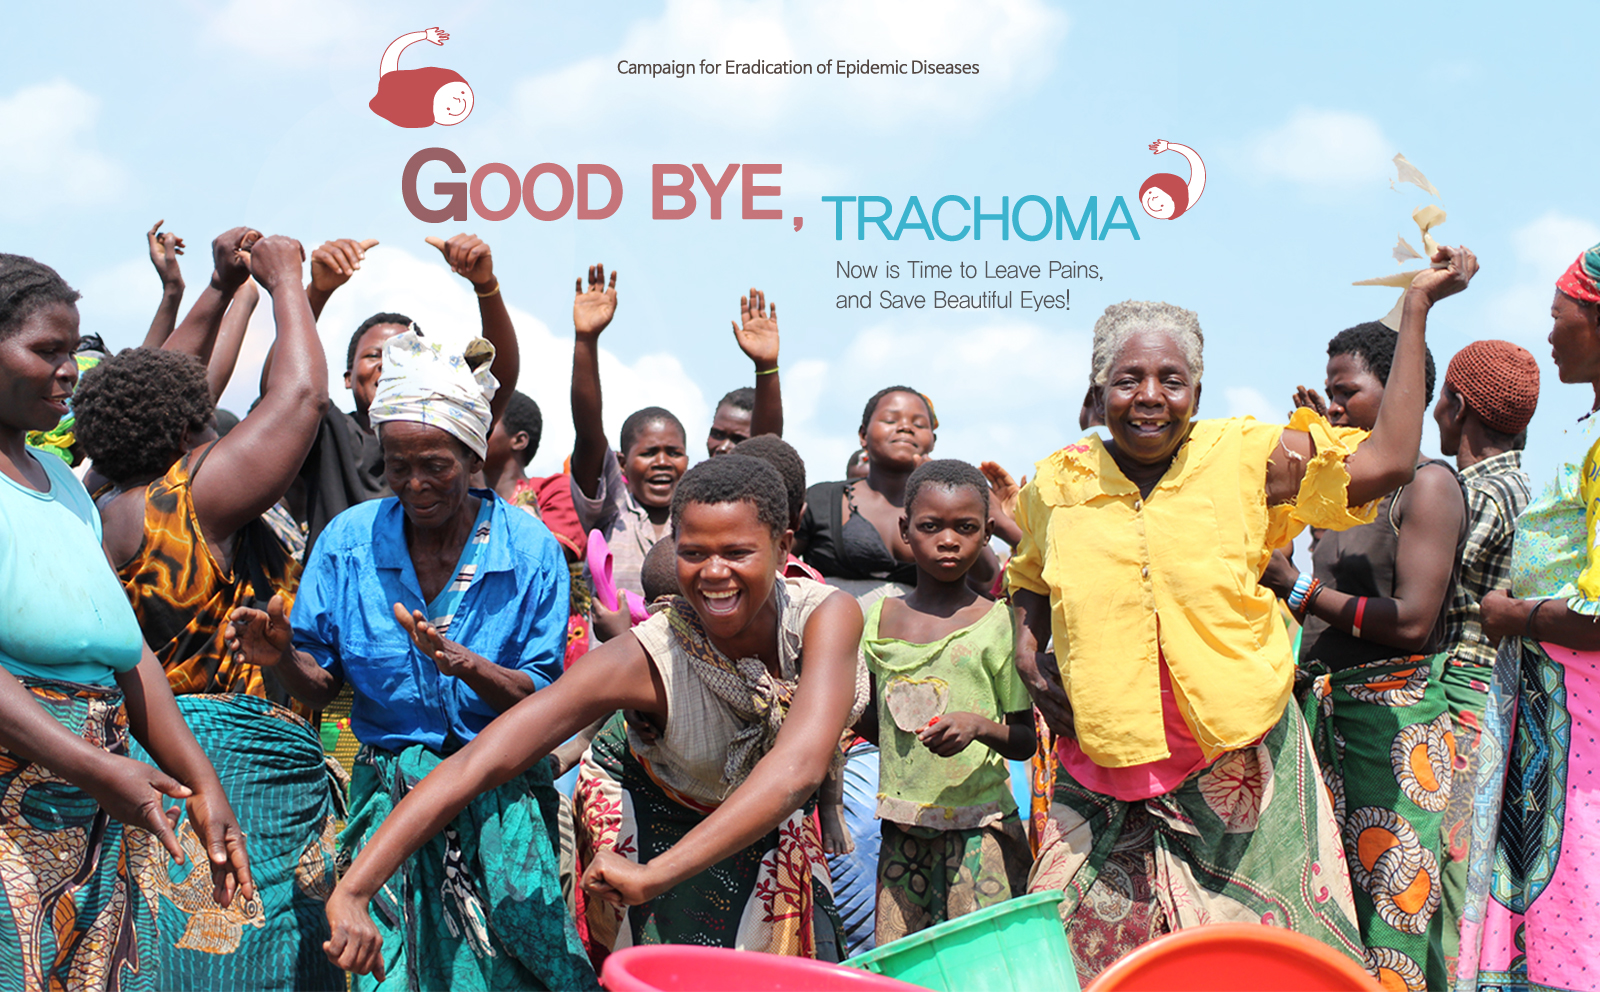 Campaign for Eradication of Epidemic Diseases Good Bye, Trachoma Now is Time to Leave Pains, and Save Beautiful Eyes!